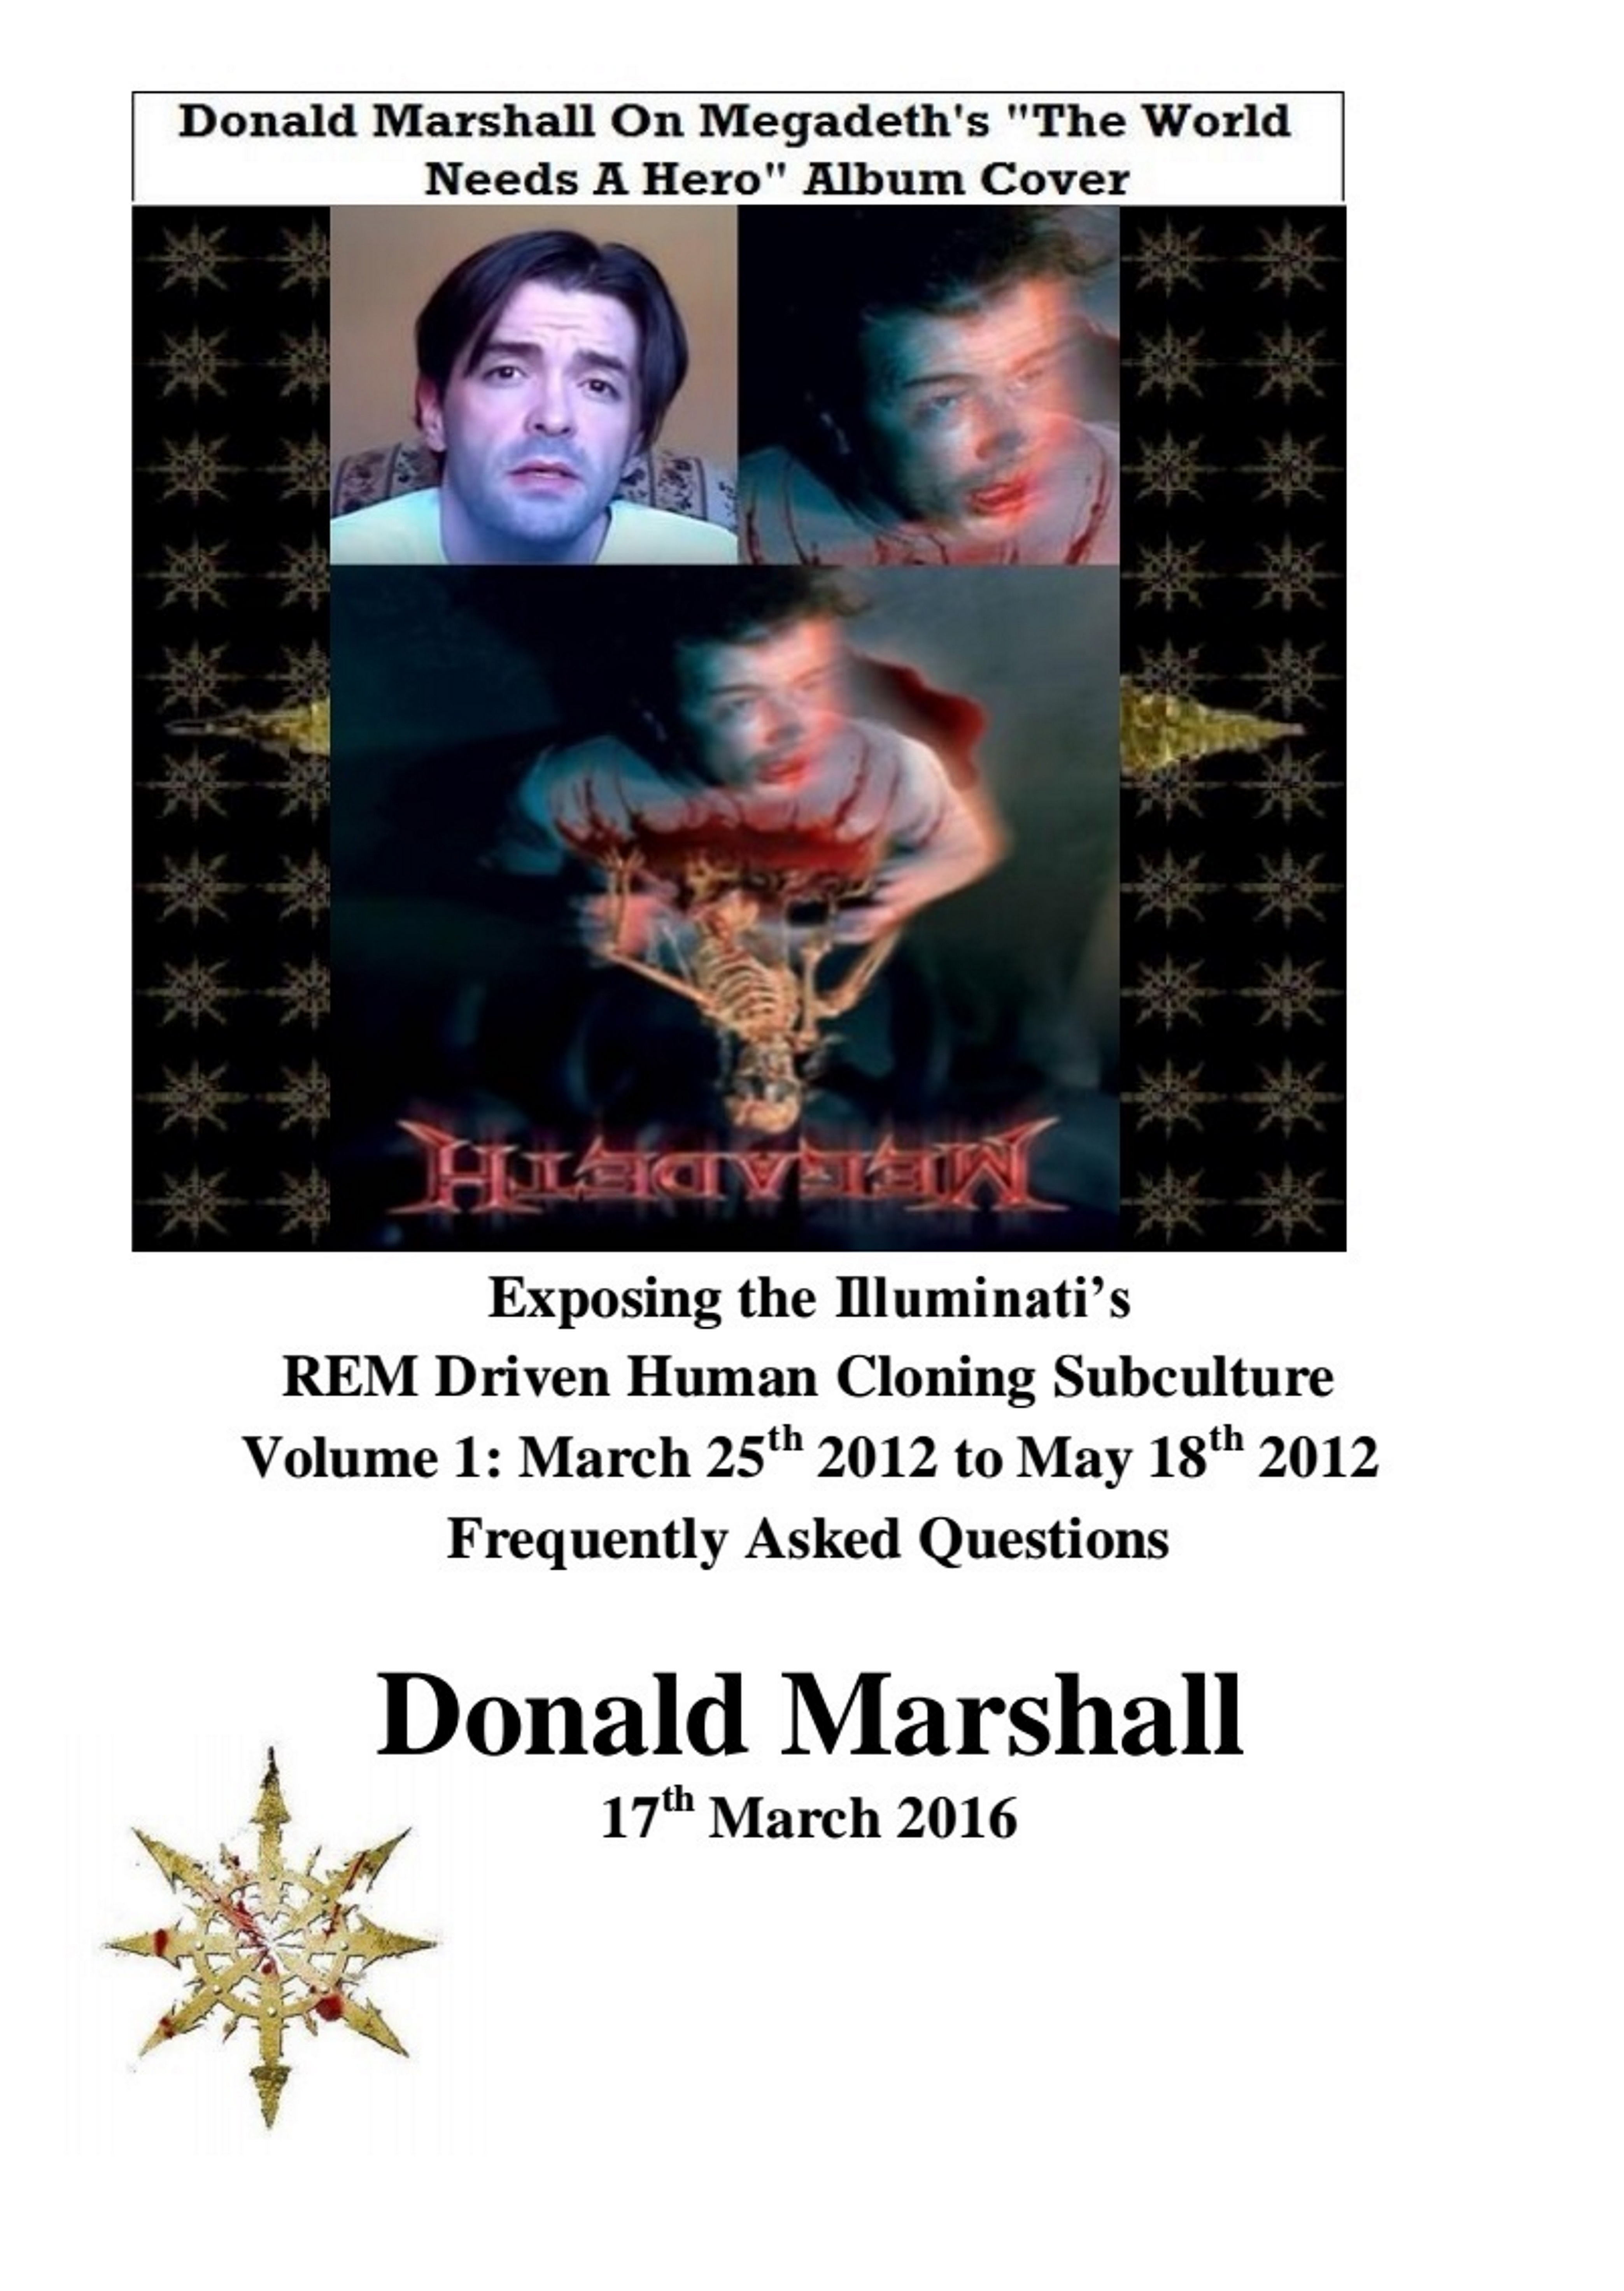 Exposing The Illuminati's Rem Driven Human Cloning Subculture, Frequently  Asked Questions, Volume 1 By Donald Marshall